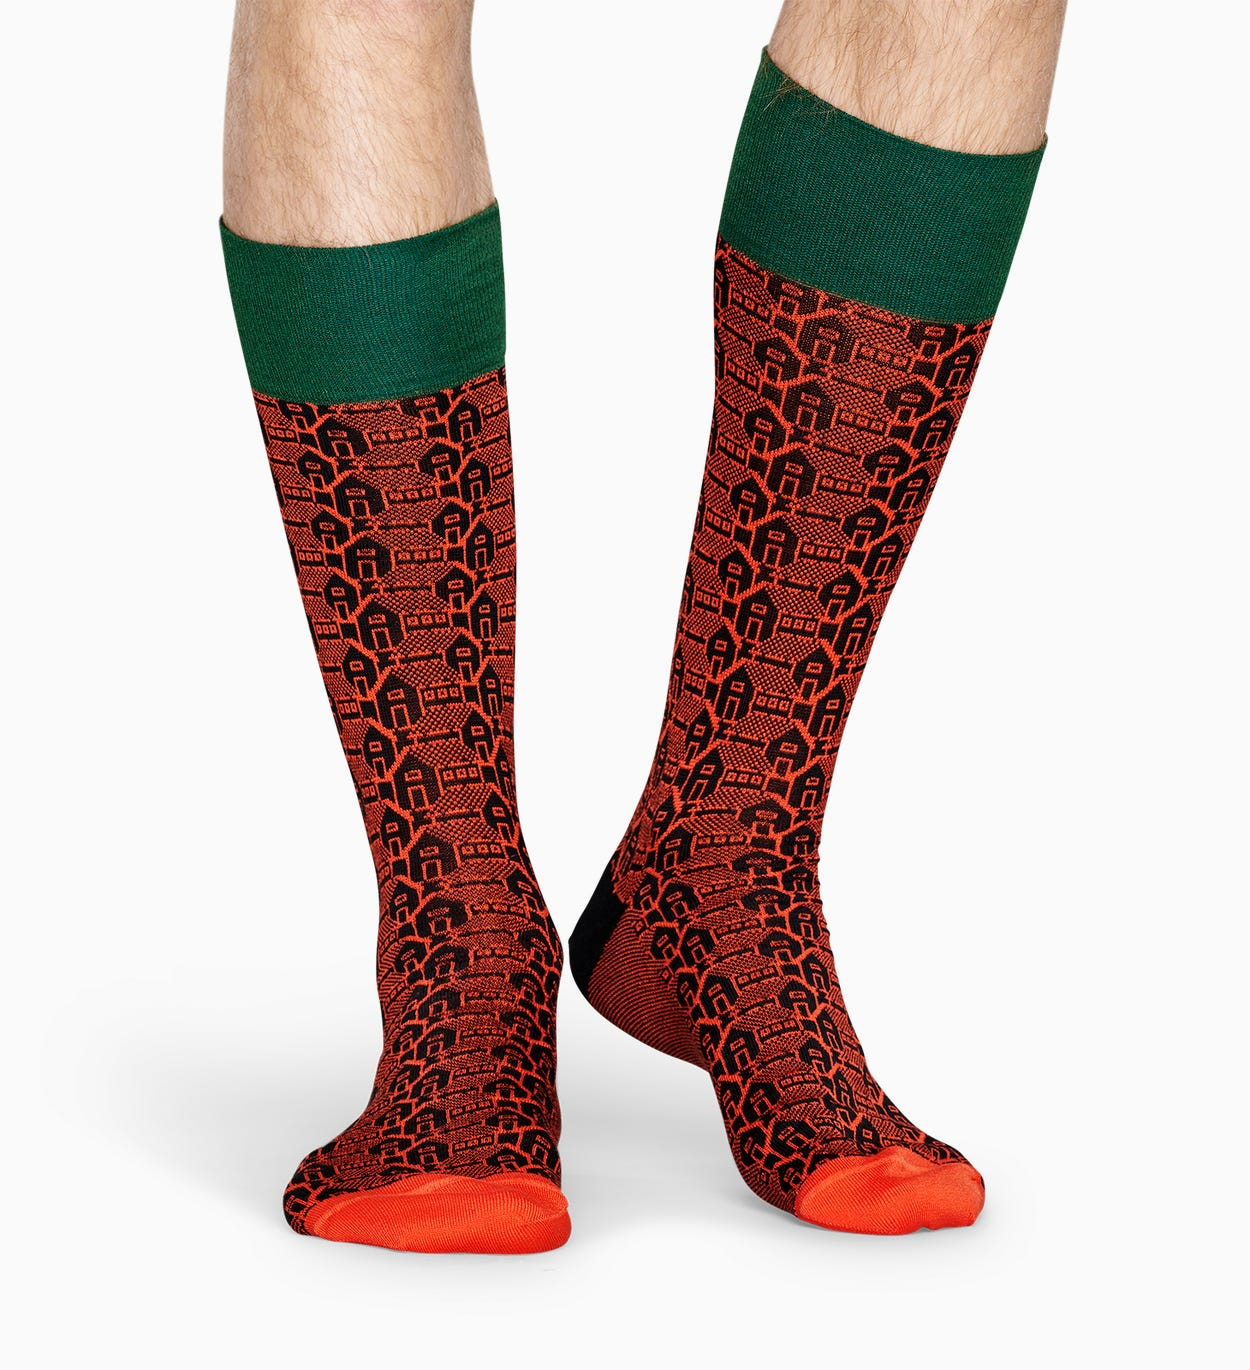 Orange Anzugsocken: Architektur - Dressed | Happy Socks